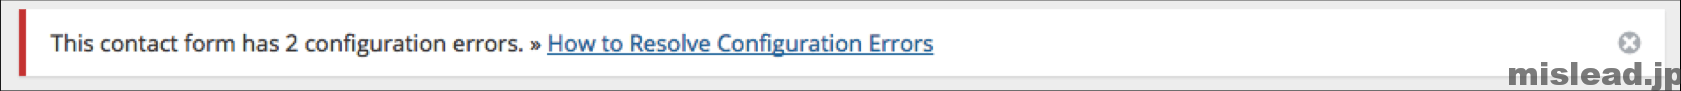 This contact form has 2 configuration errors.